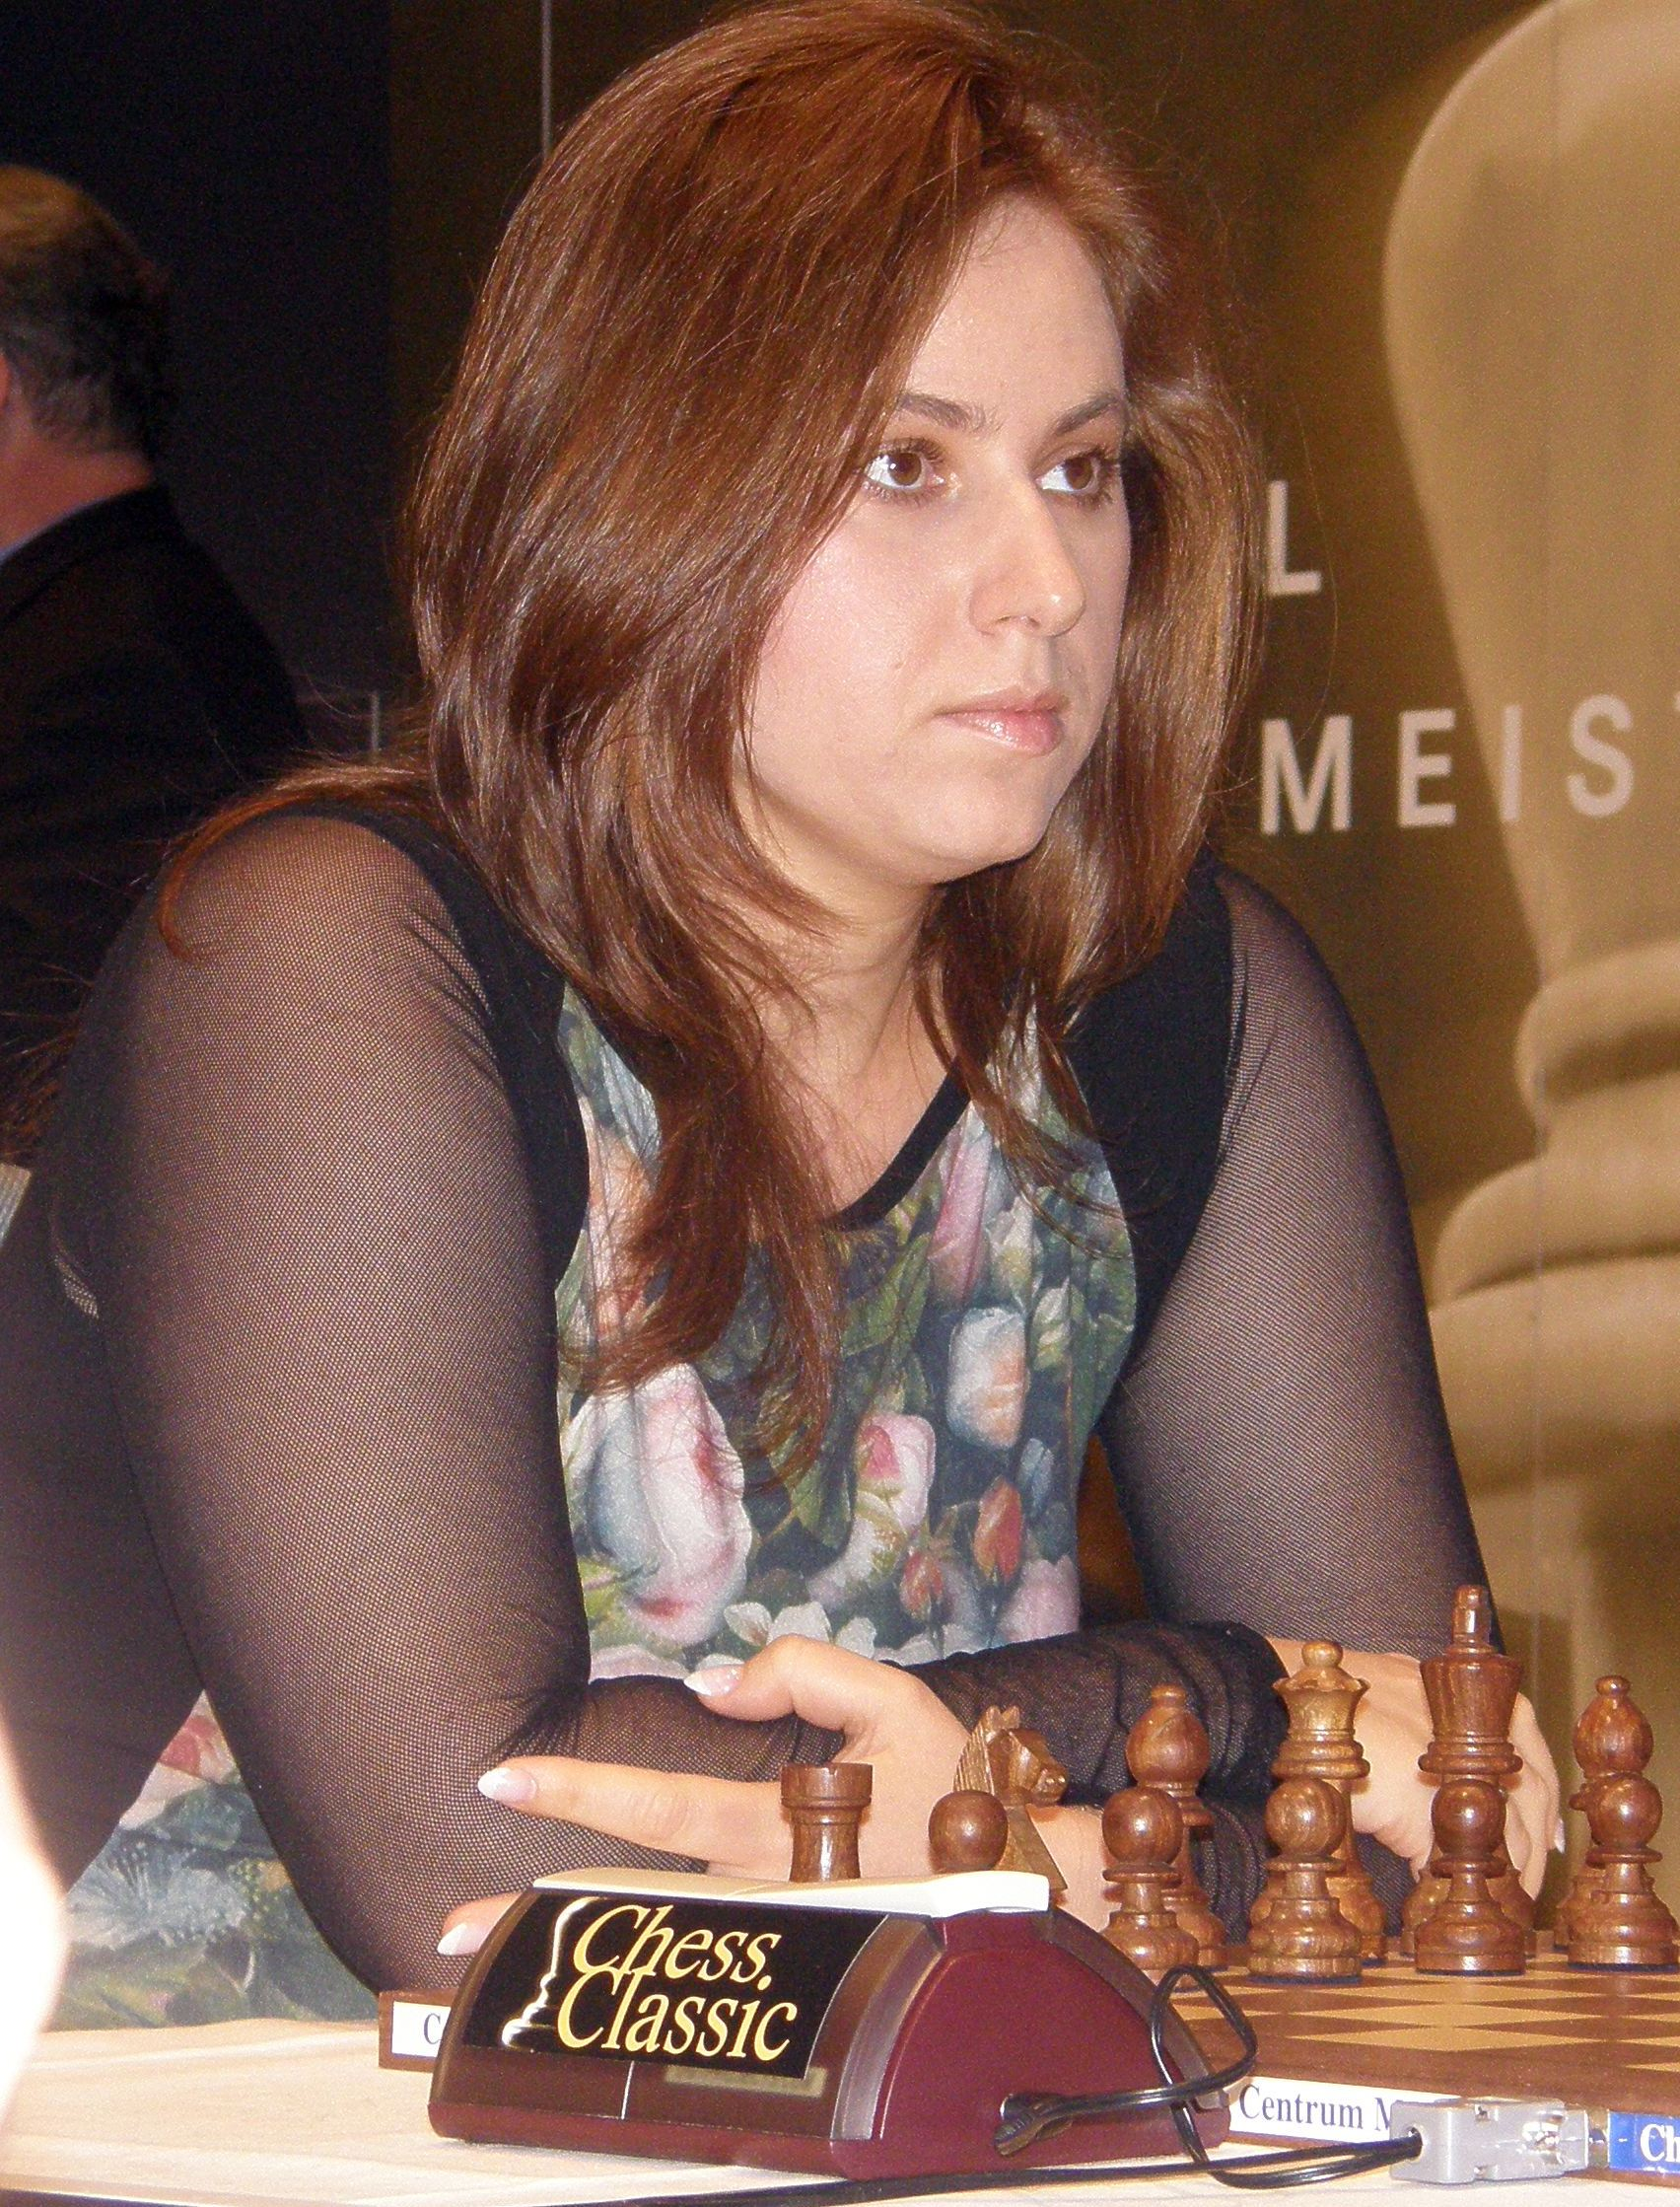 http://upload.wikimedia.org/wikipedia/commons/d/d0/Judit_polgar_03.08.2008.jpg